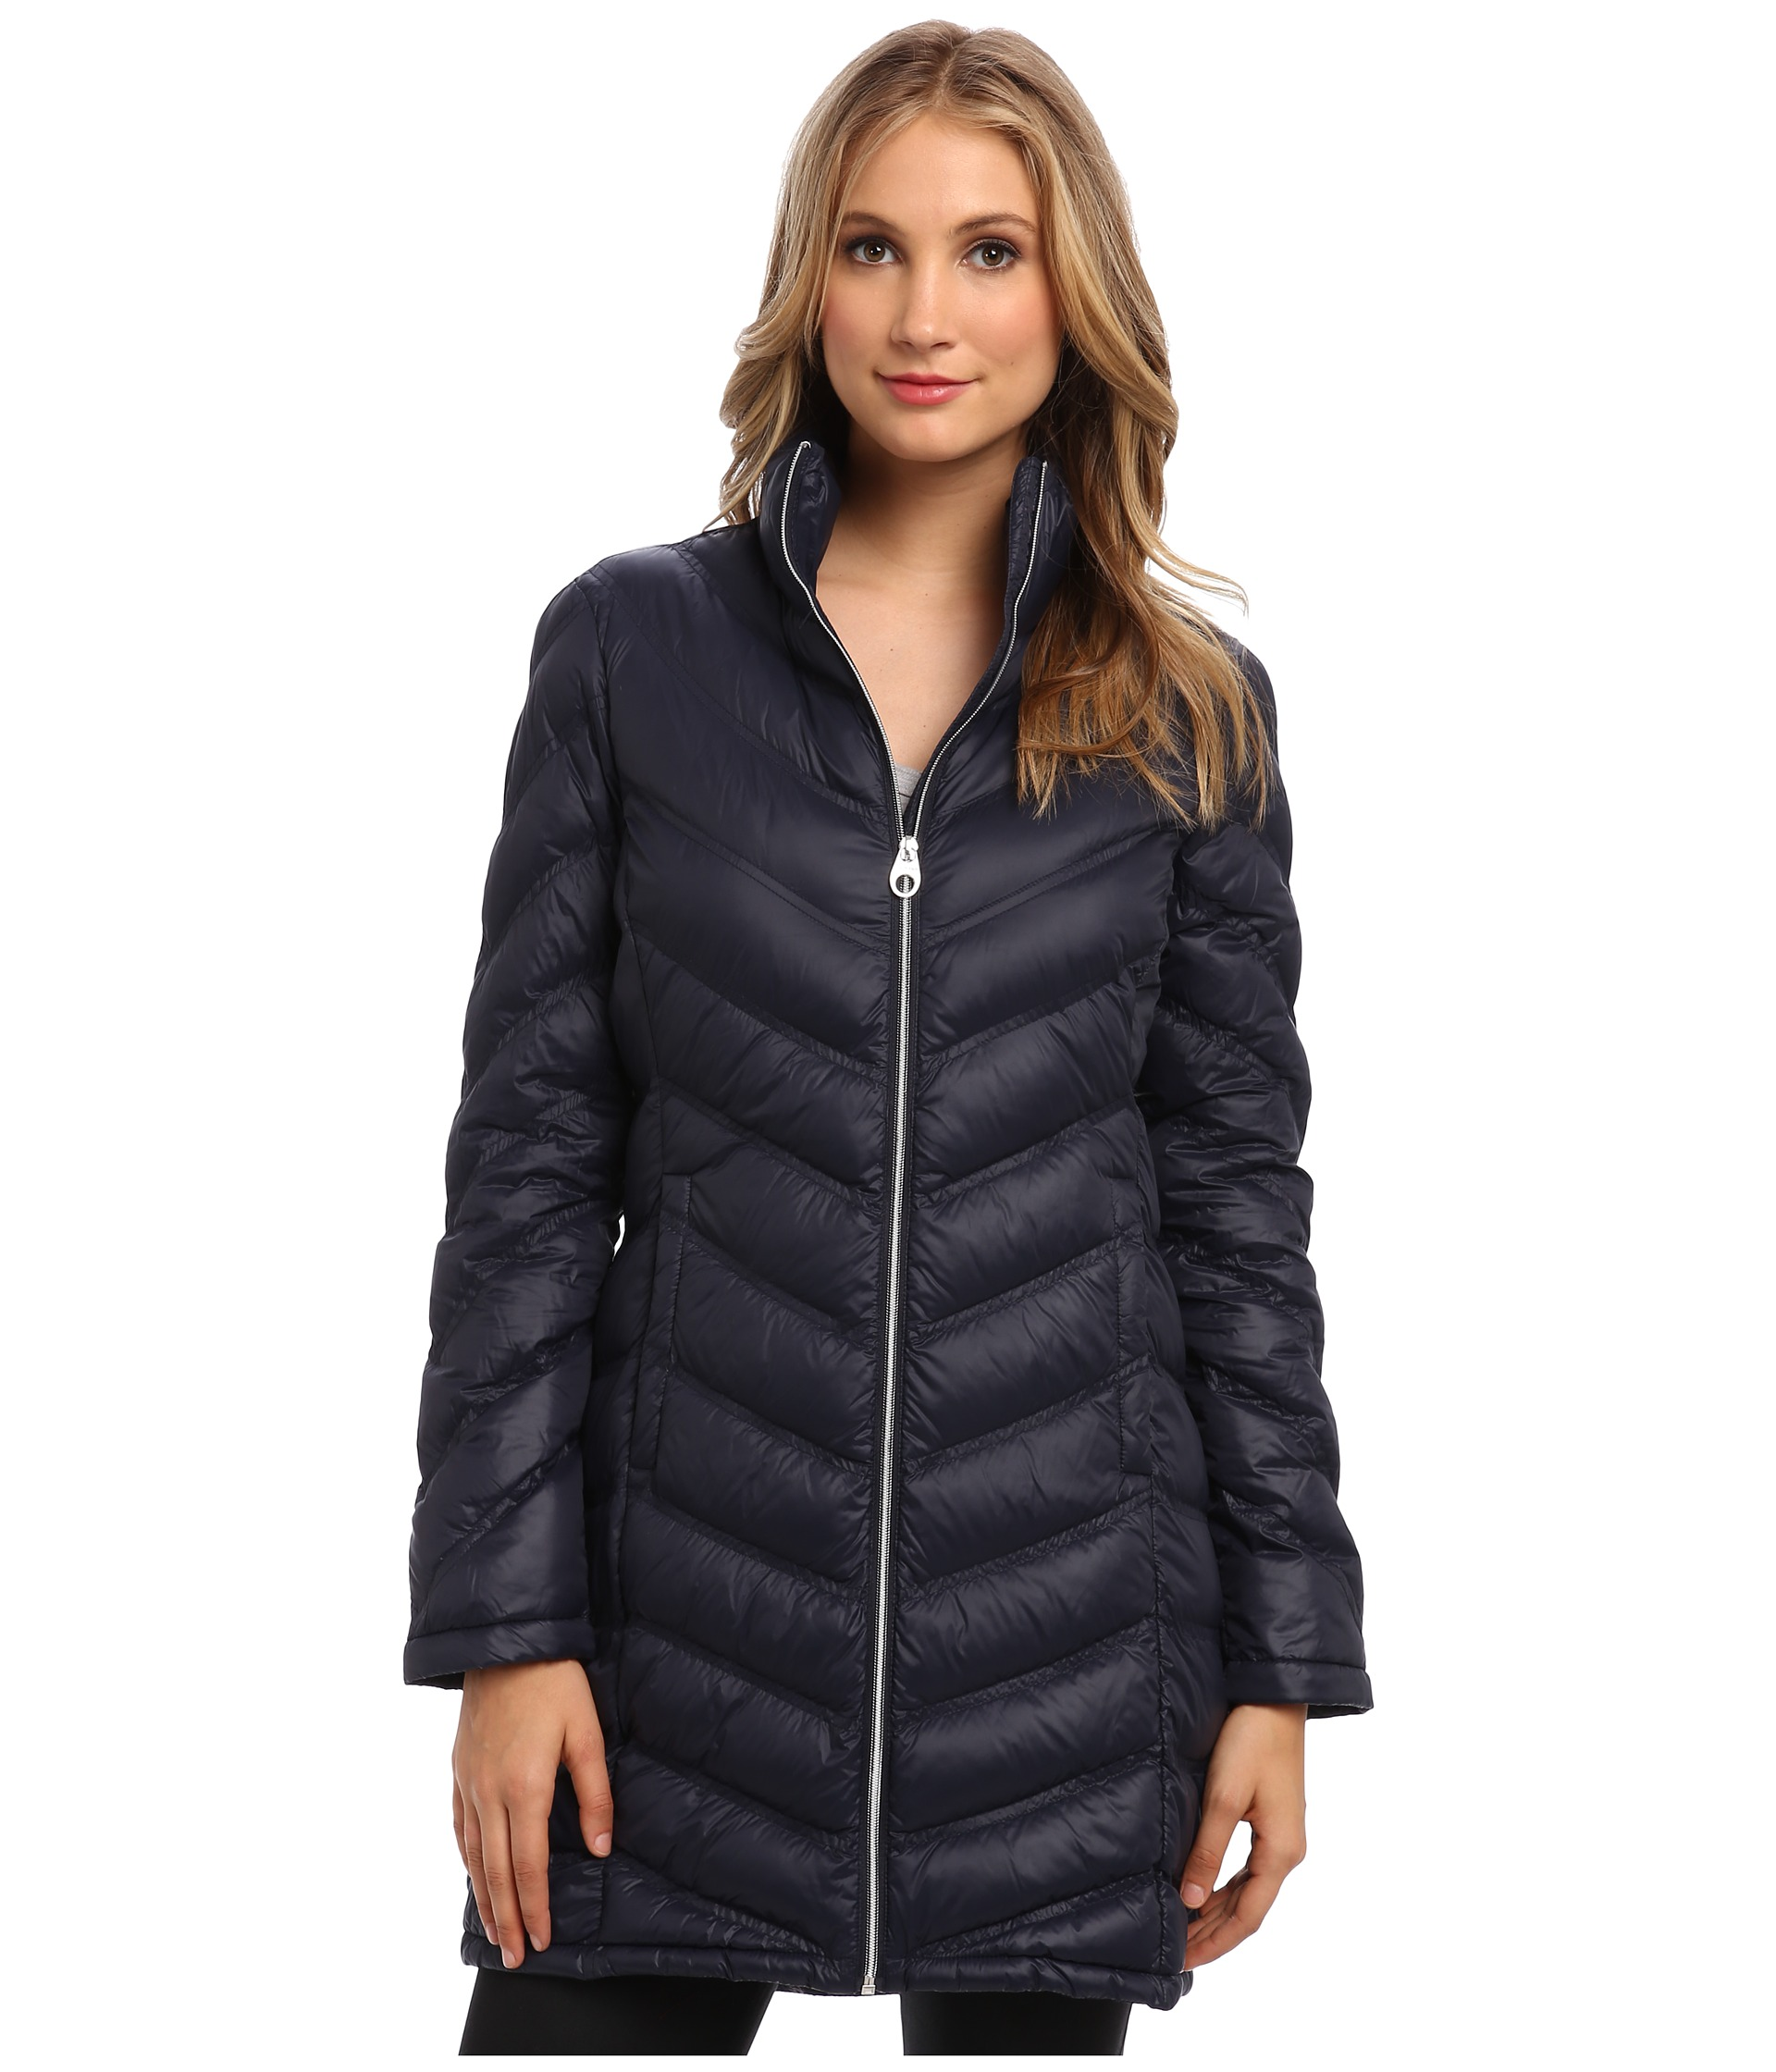 Calvin klein zip front long packable down jacket cw312100 shipped